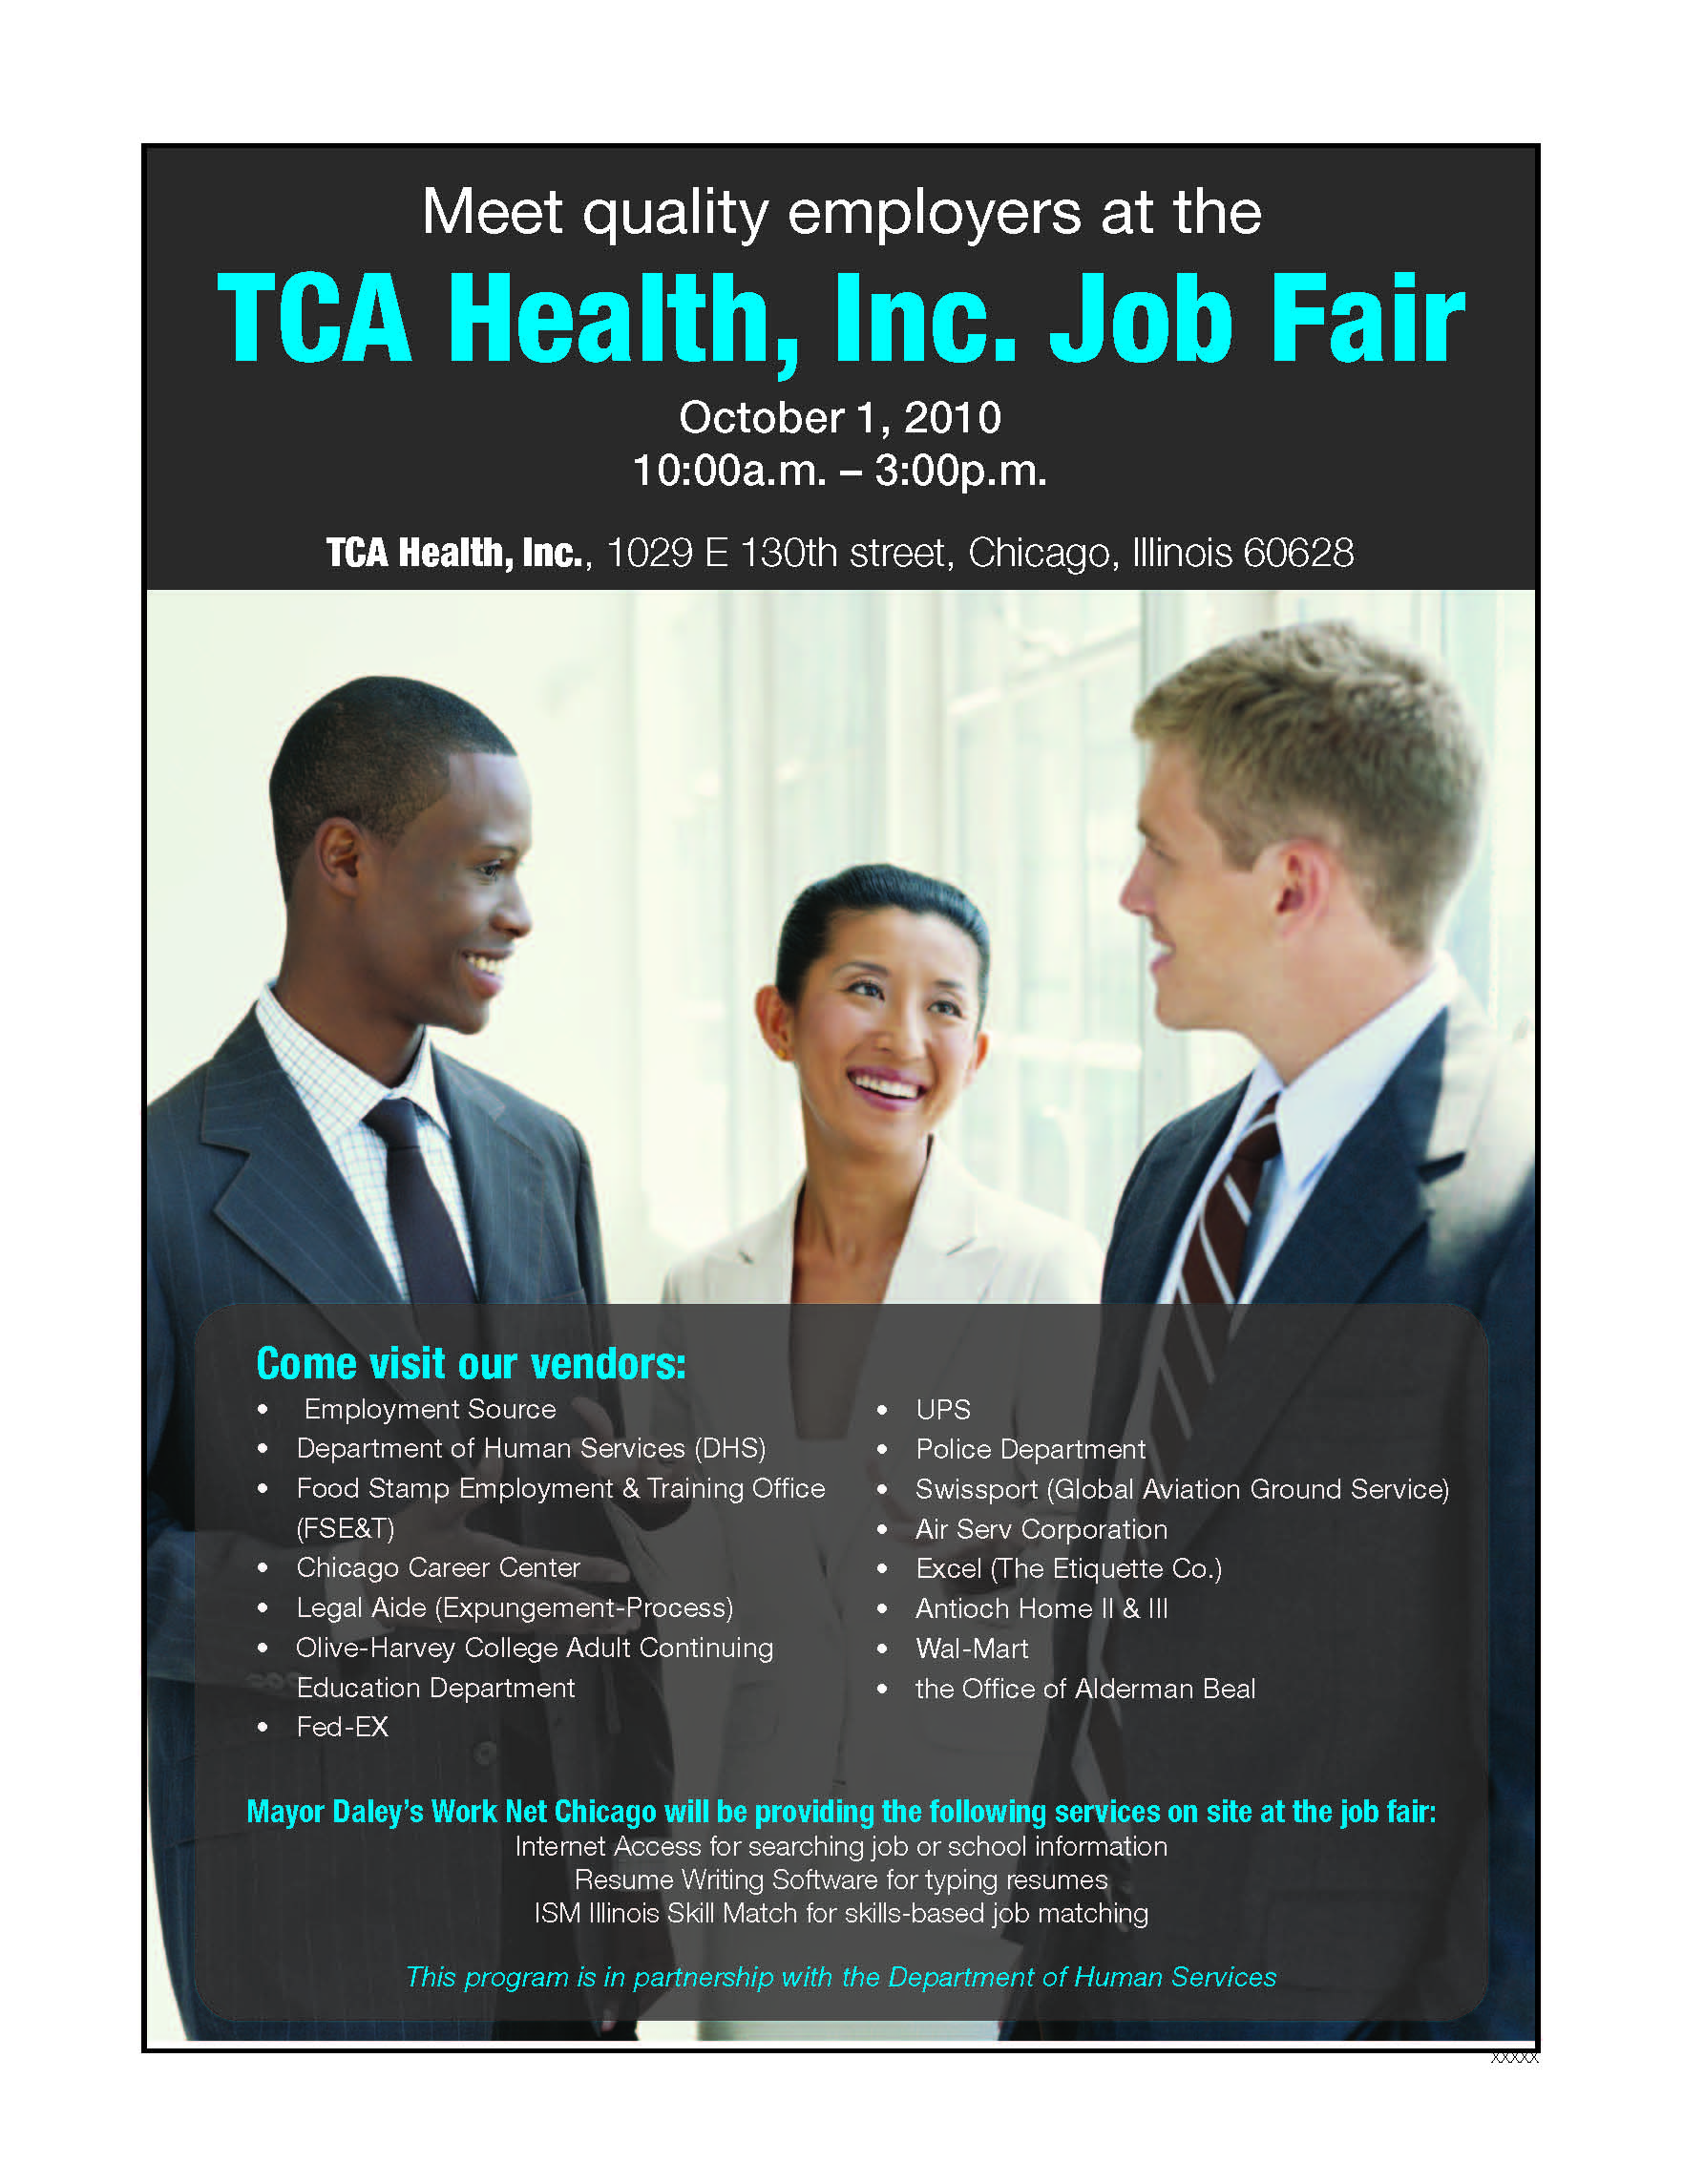 Job Fair at TCA Health